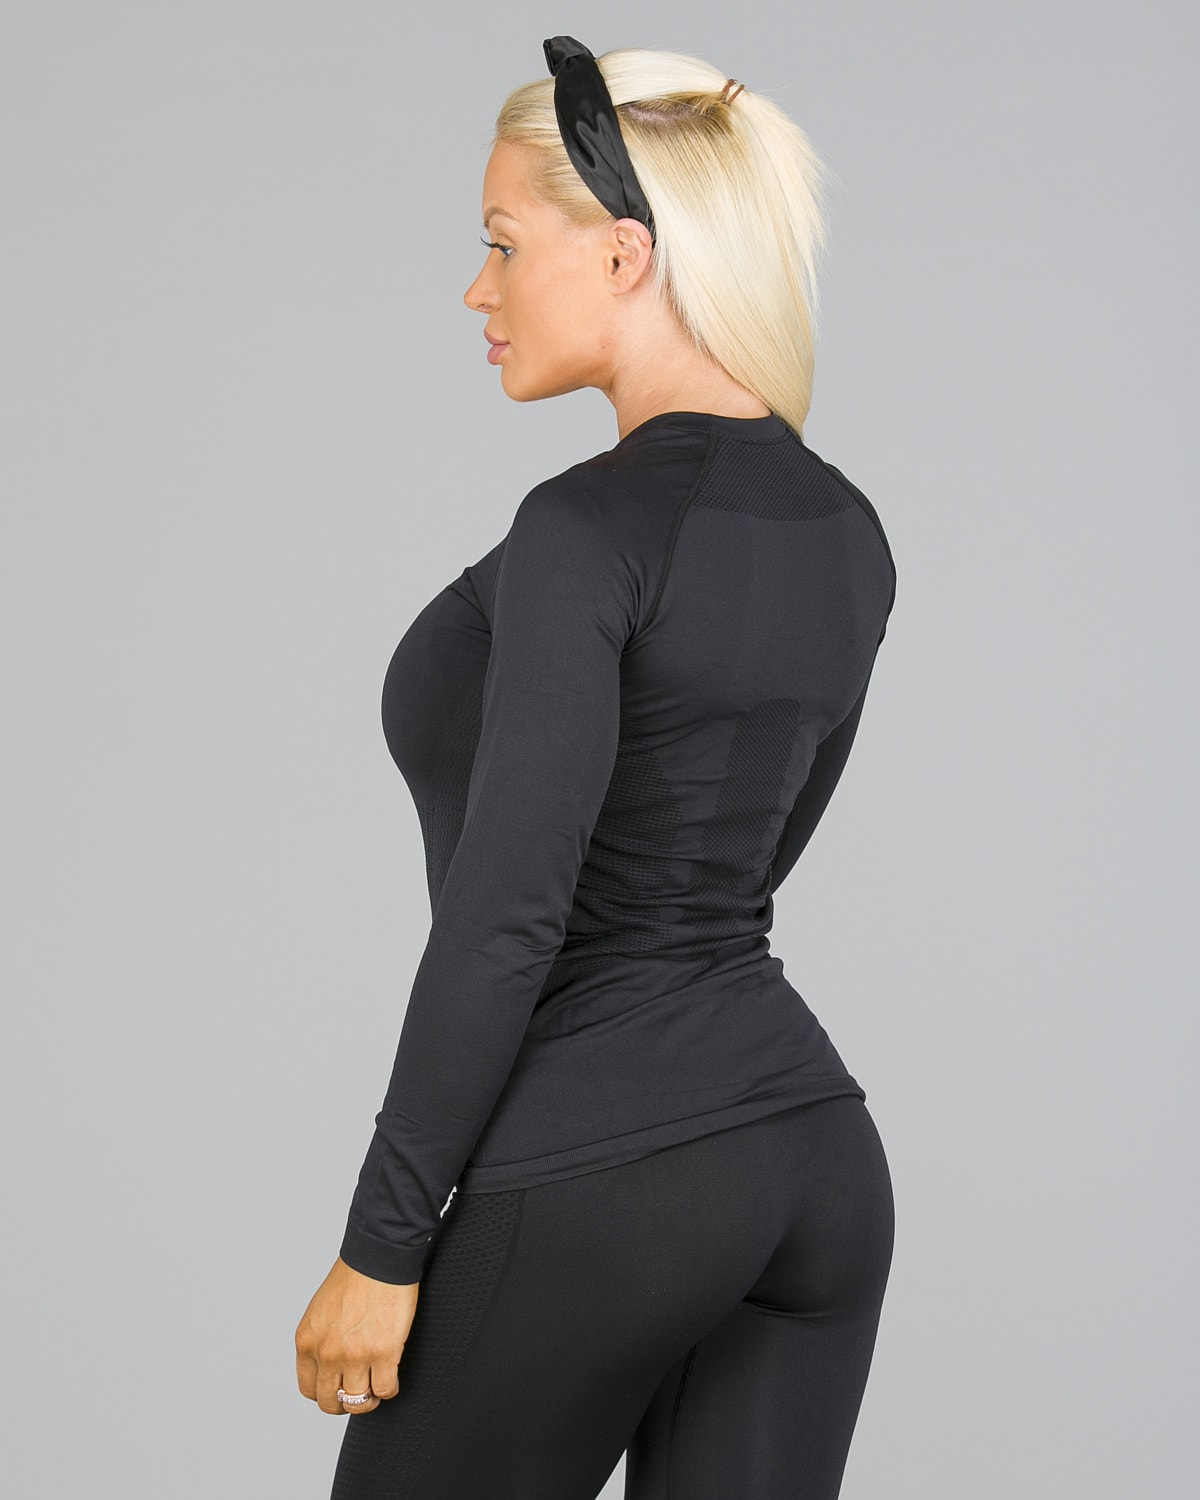 4F Seamless Top Women – Black4